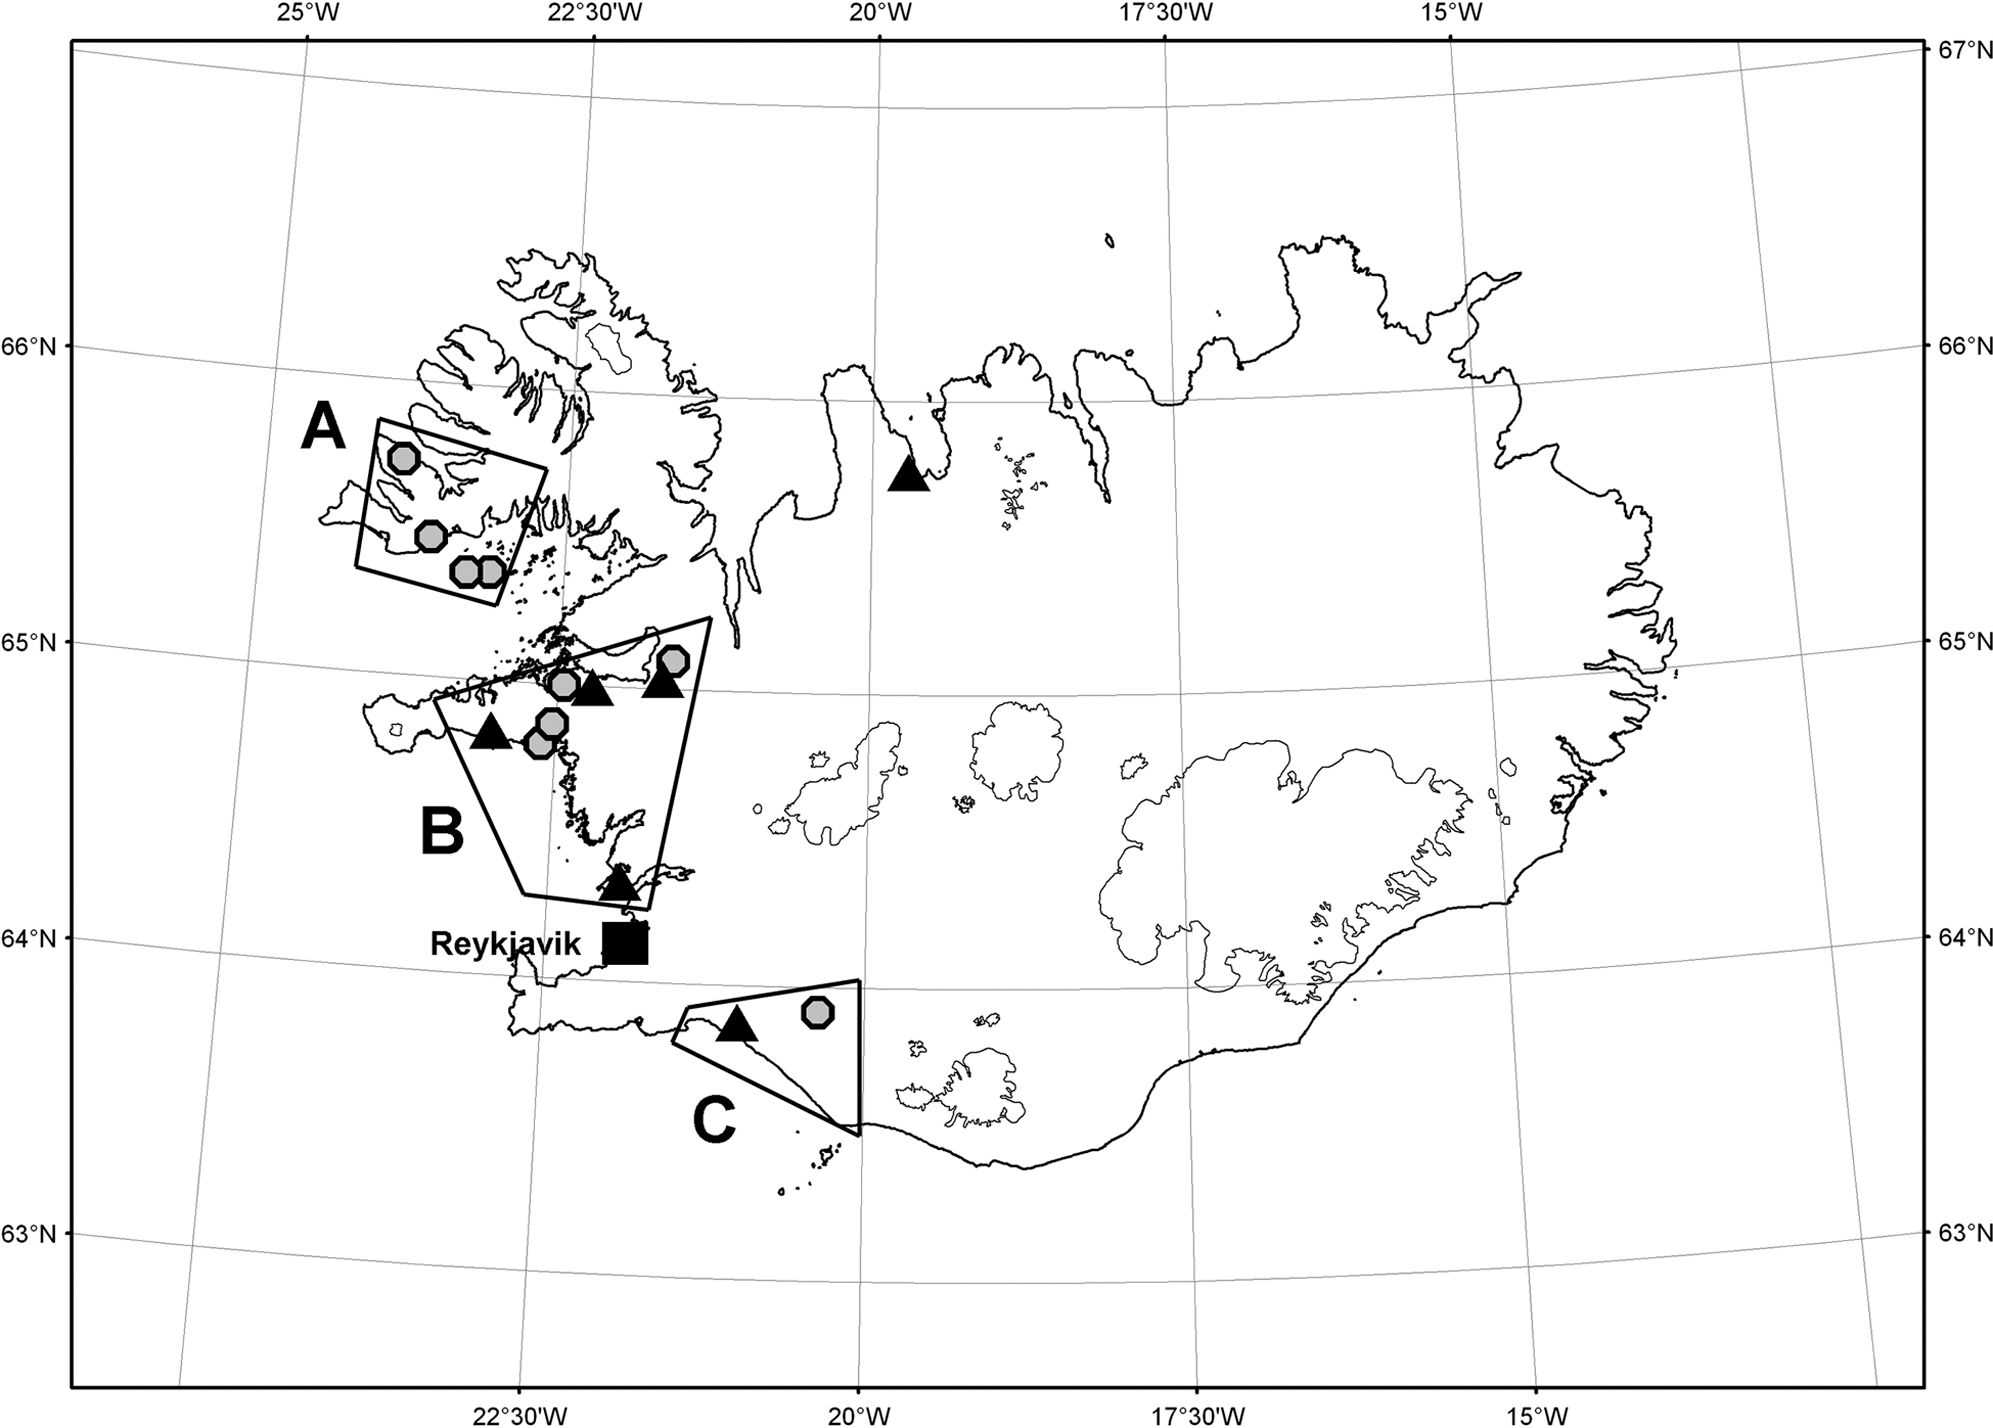 A map of Iceland demonstrating the geographical distribution of families with the HCCAA mutation around the year 1800.